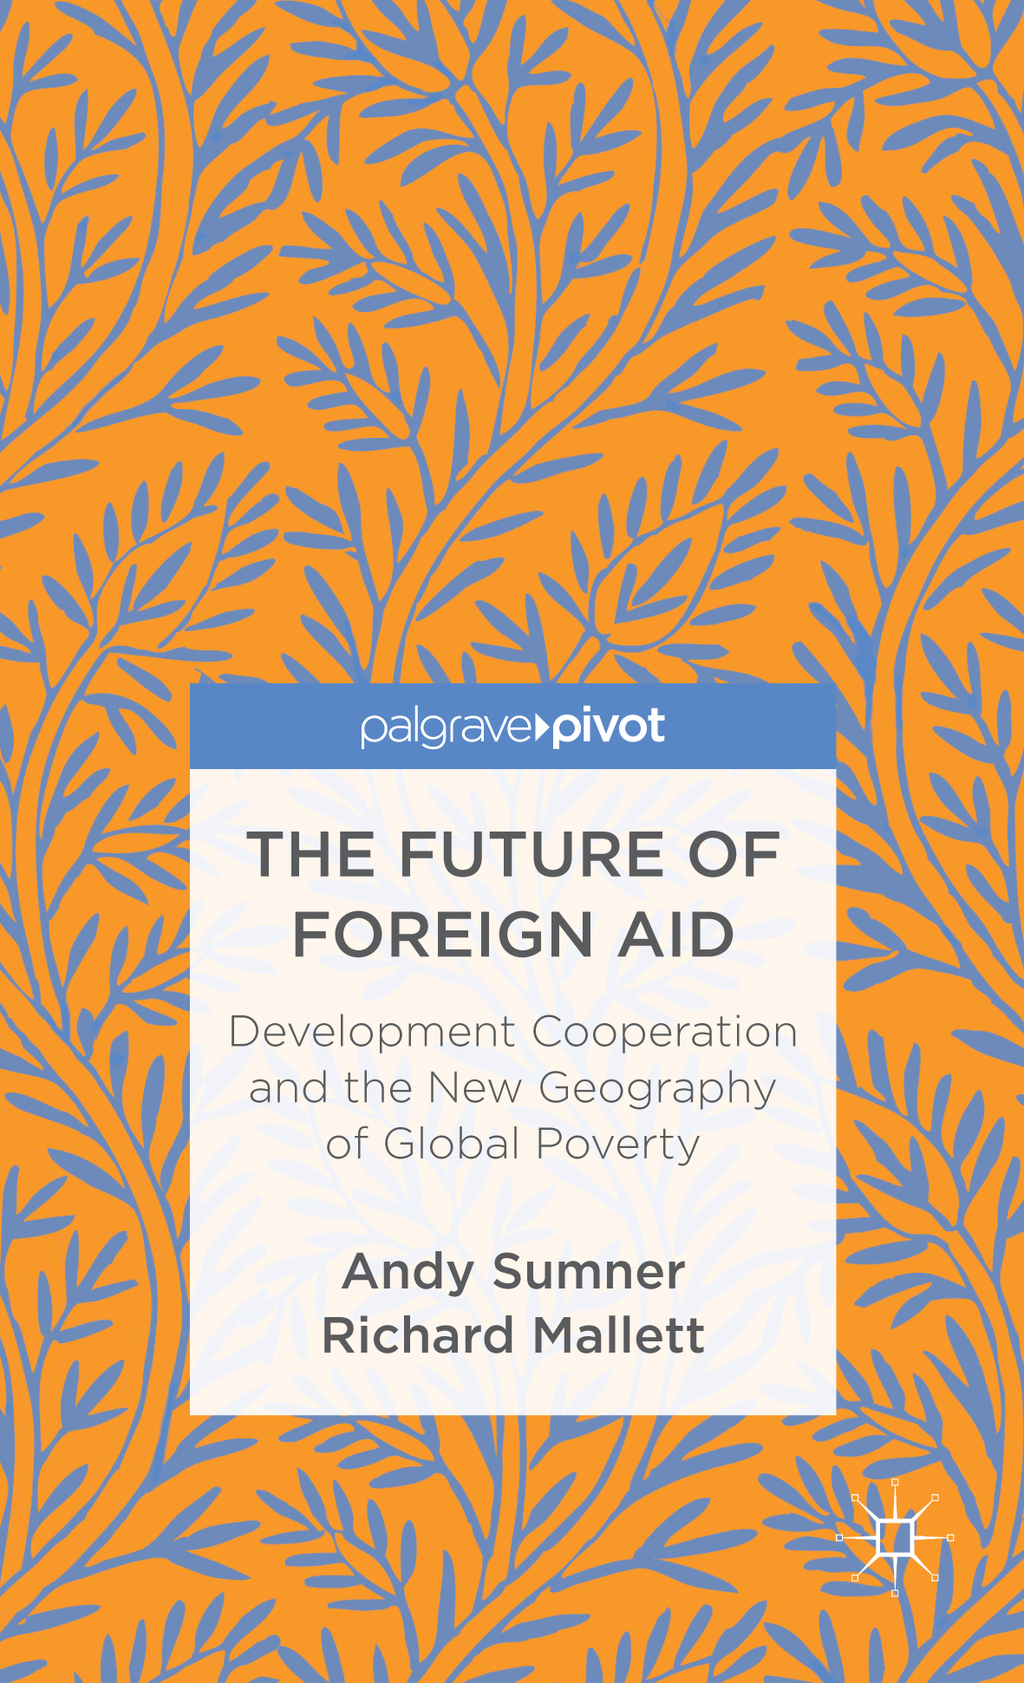 The Future of Foreign Aid Development Cooperation and the New Geography of Global Poverty